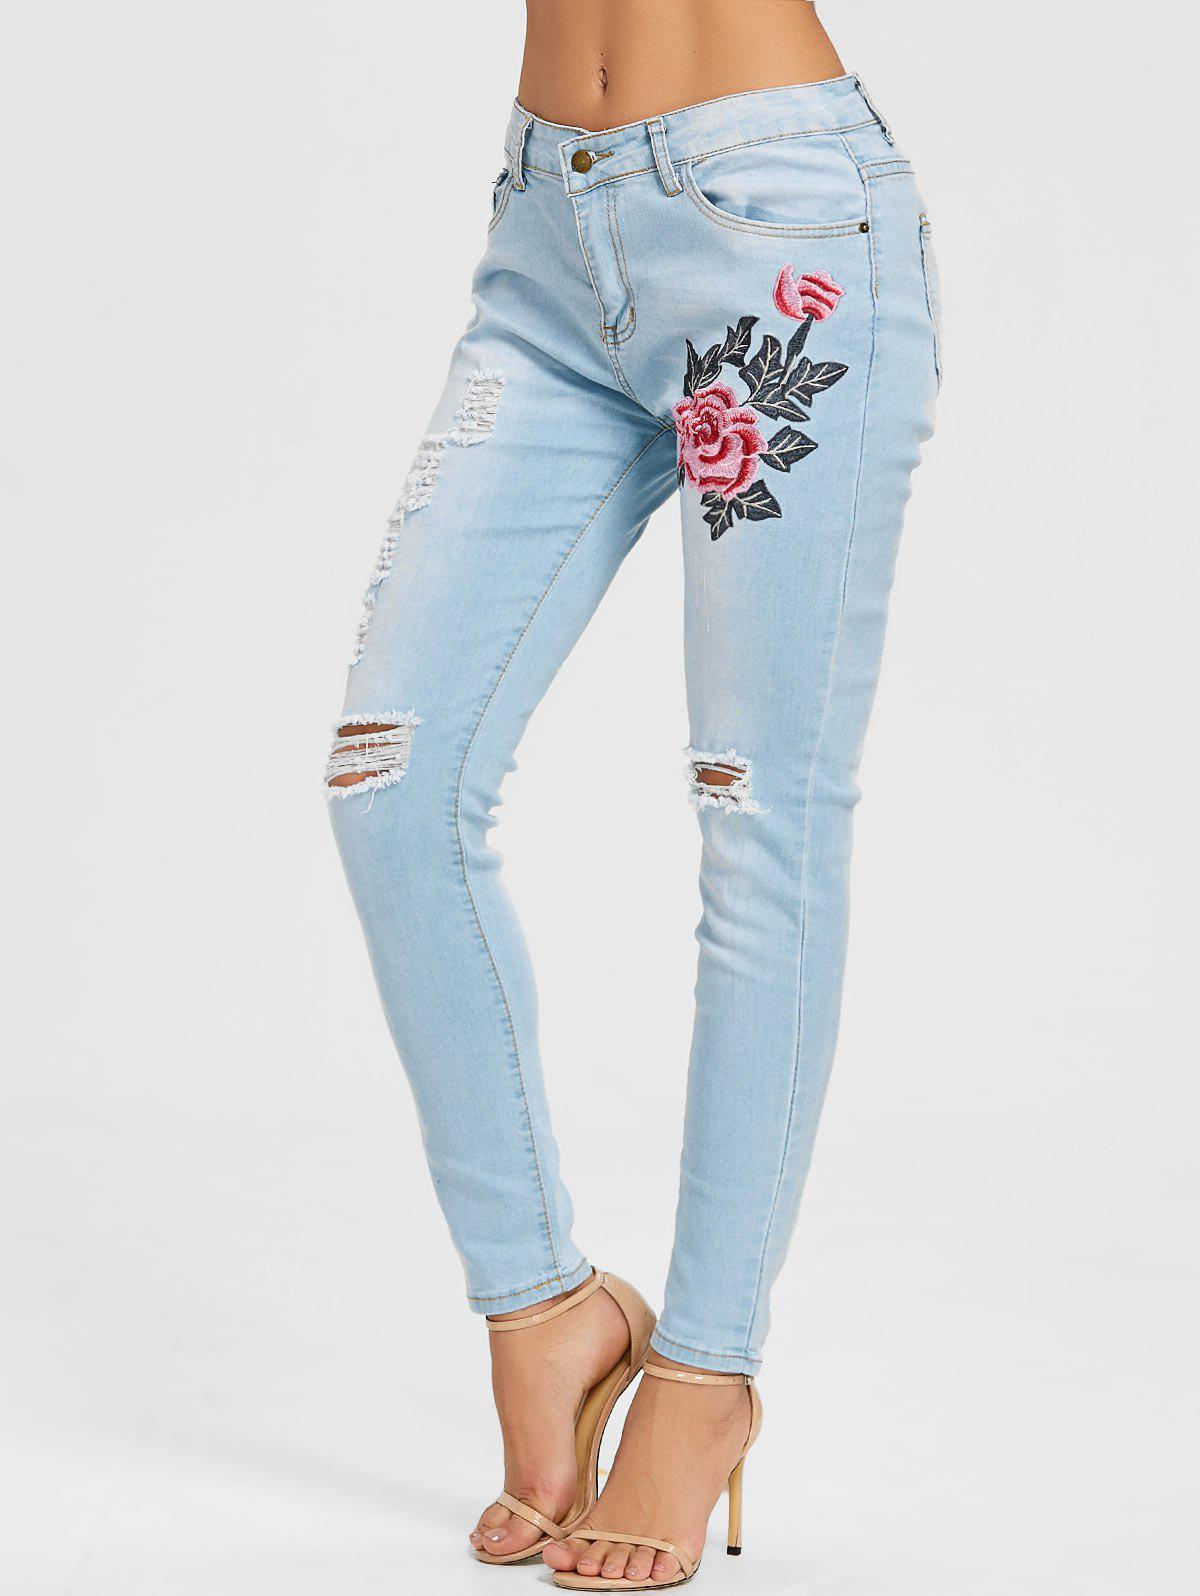 Fancy Distressed Floral Embroidery Skinny Jeans